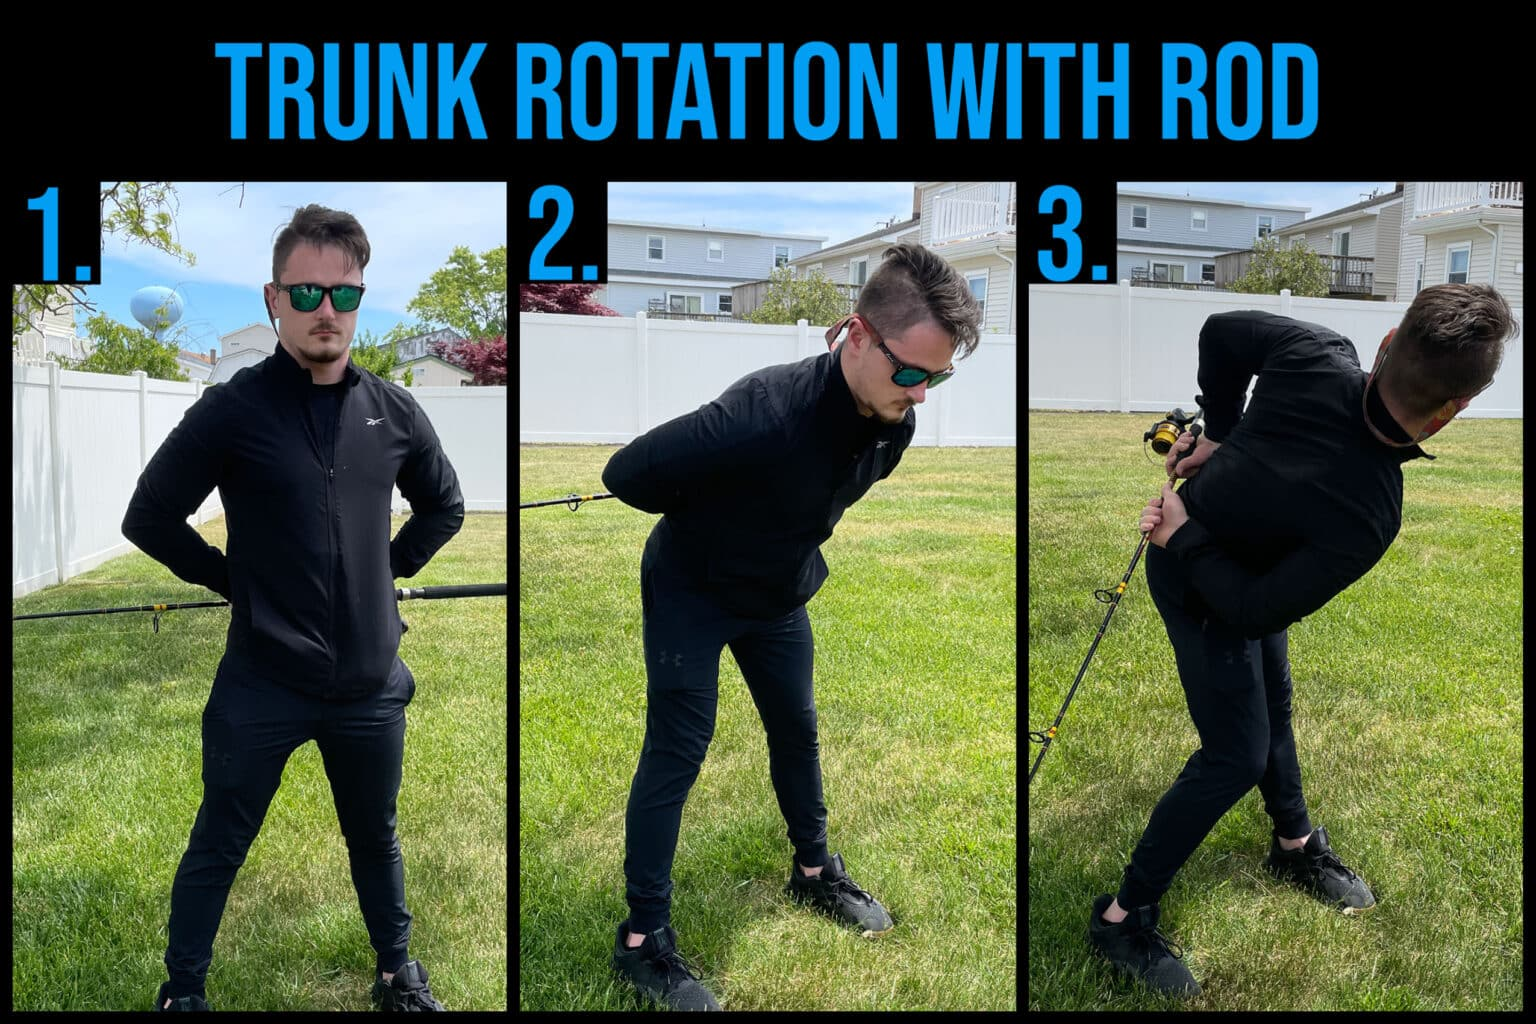 trunk rotation with rod back pain with fishing